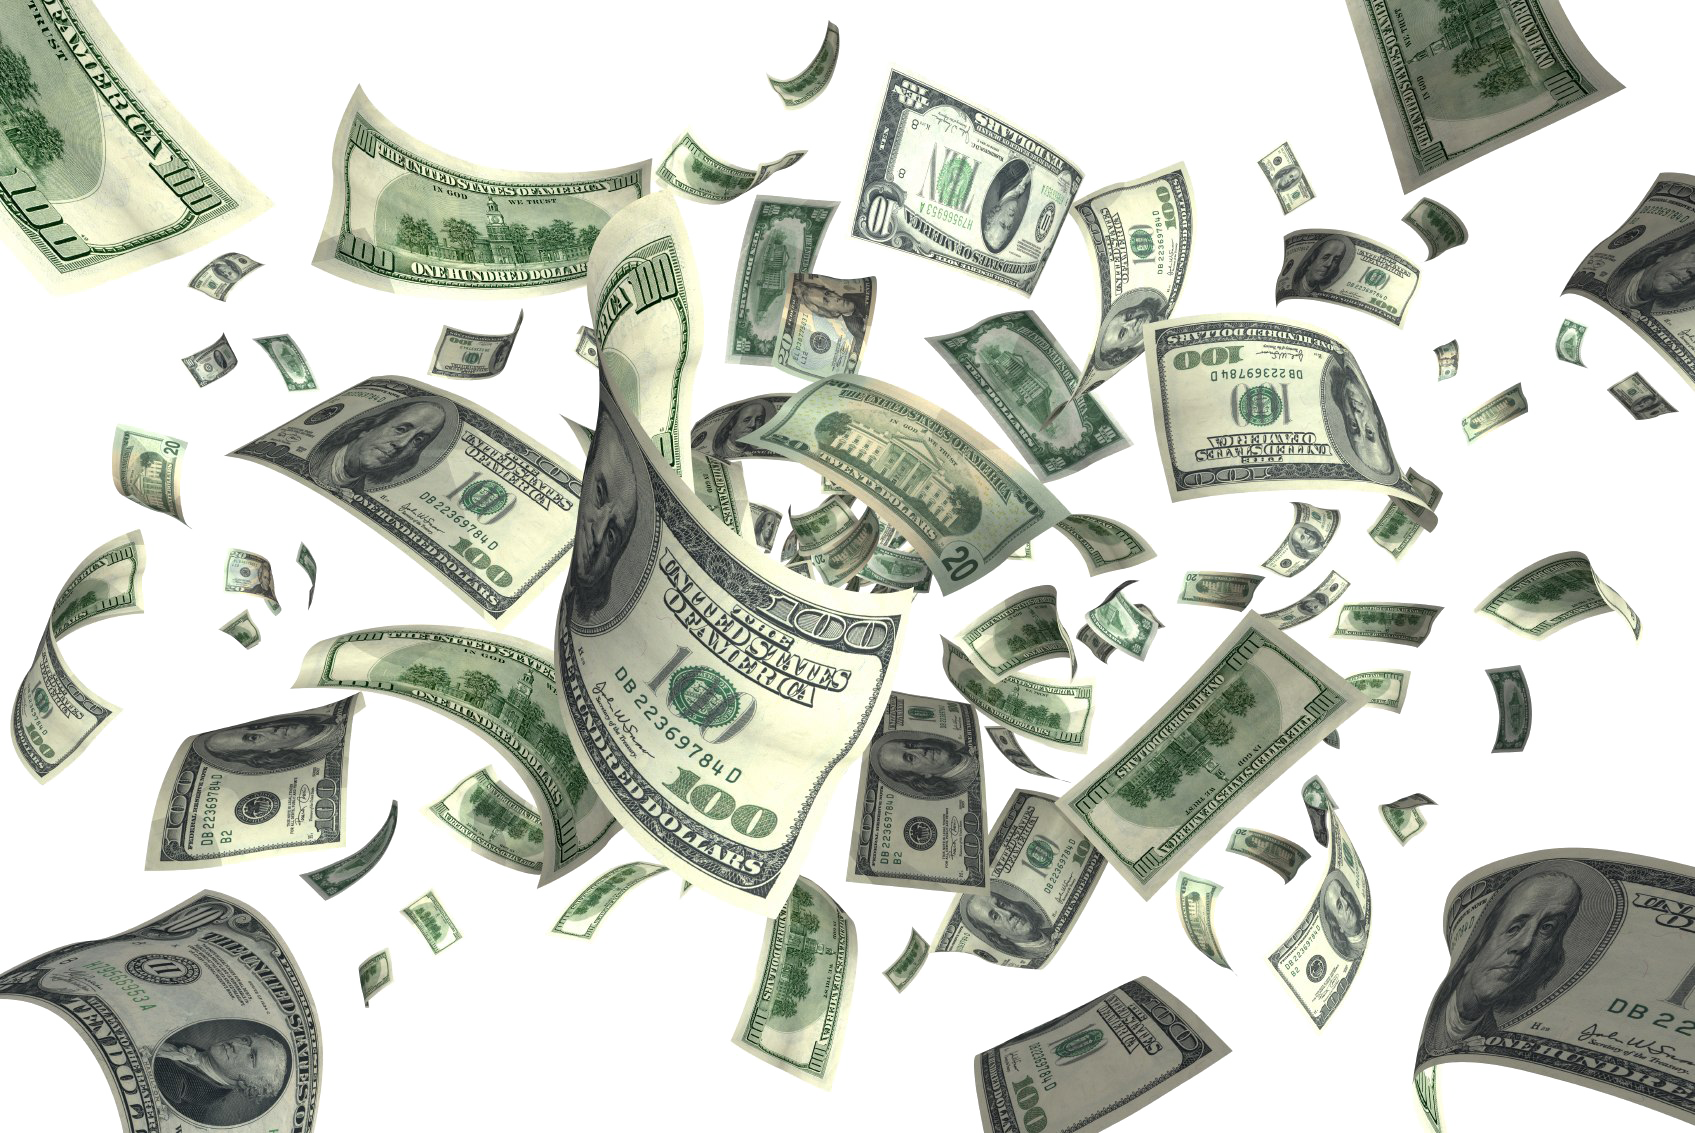 Cash download image arts. Falling money png